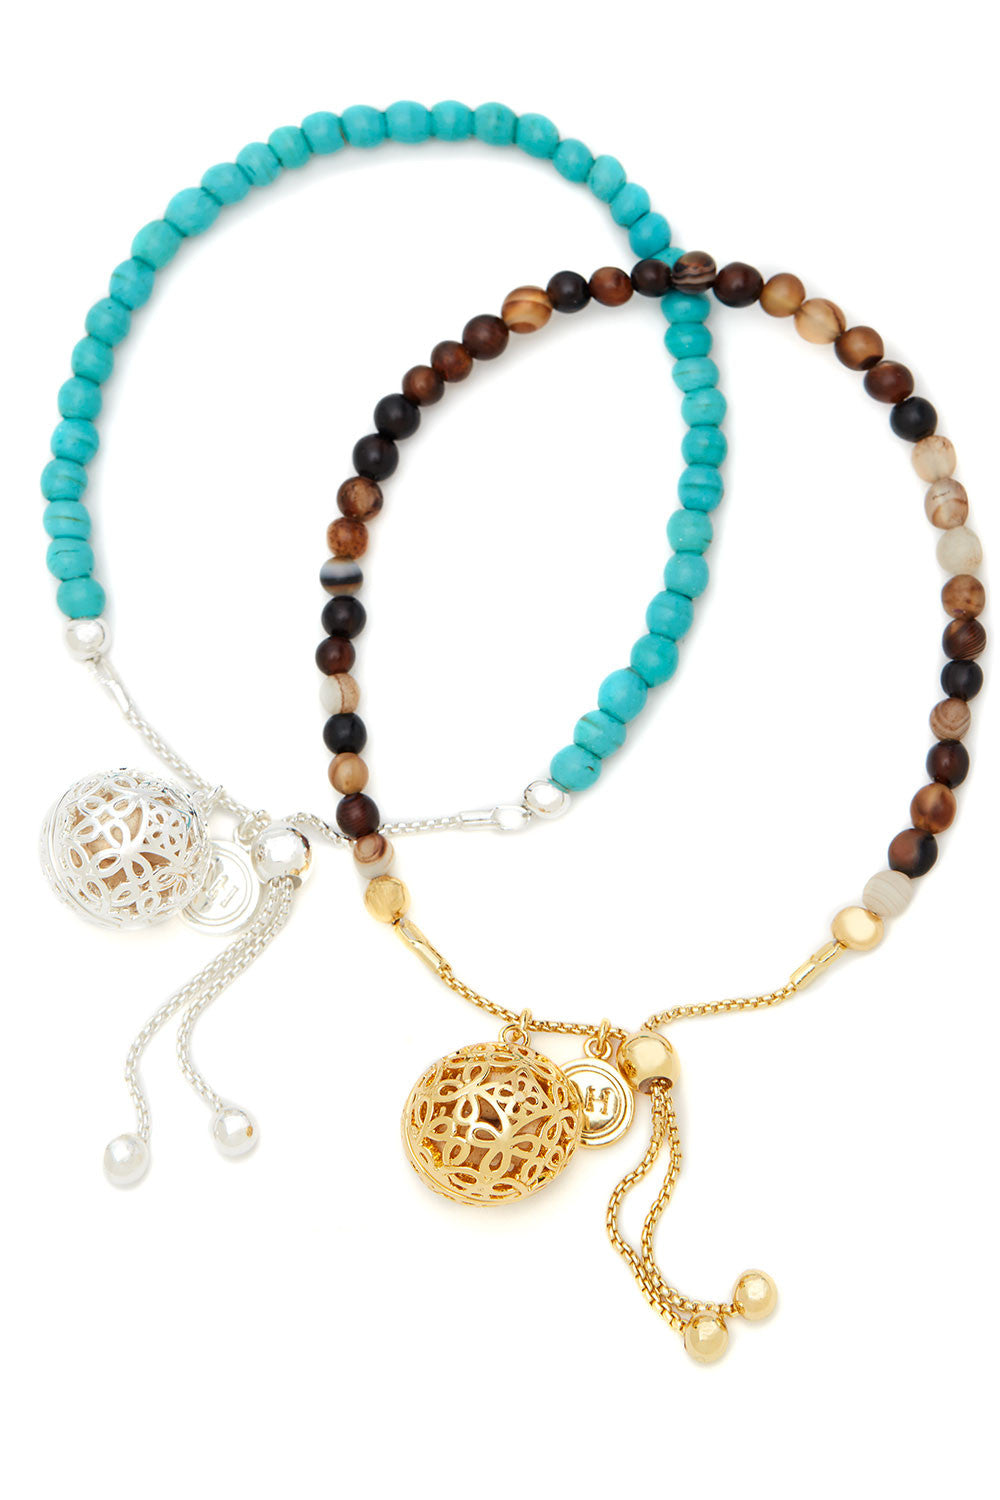 Turquoise & Sand Friendship Bracelet Duo